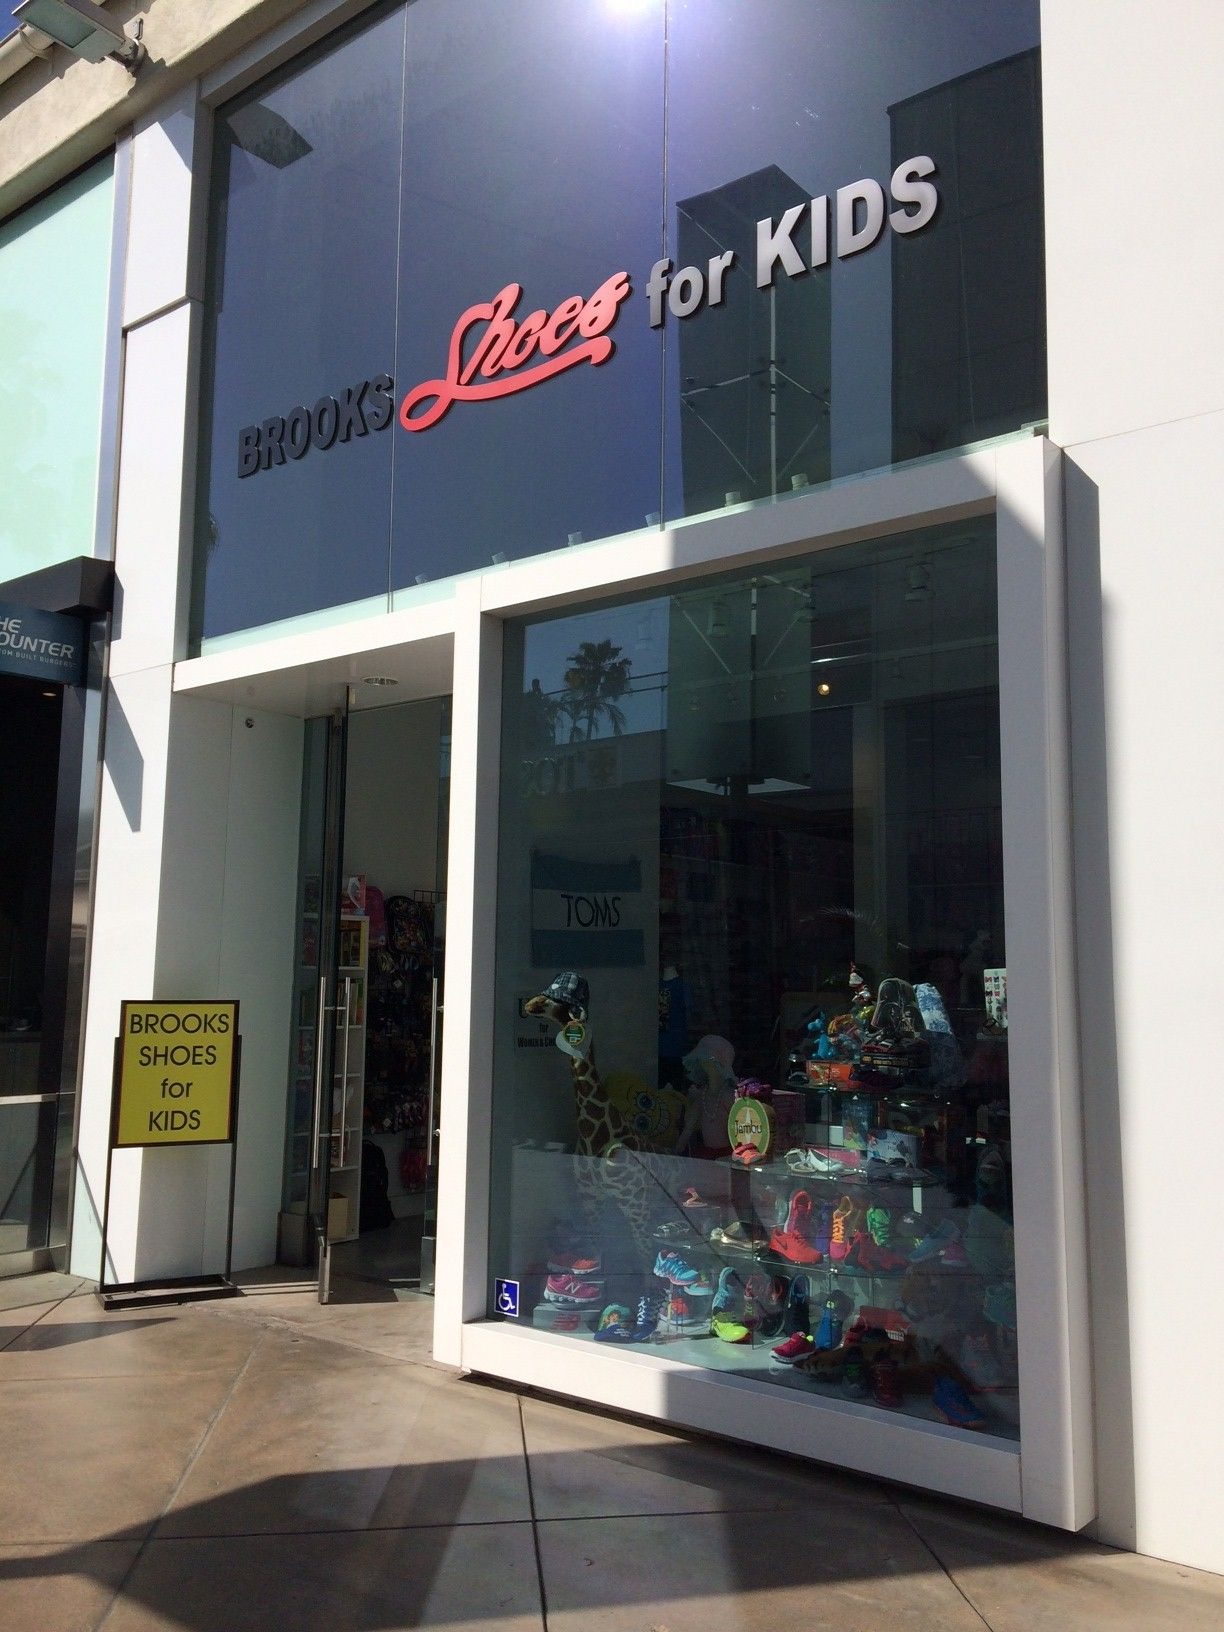 Brooks Shoes for Kids, a family owned